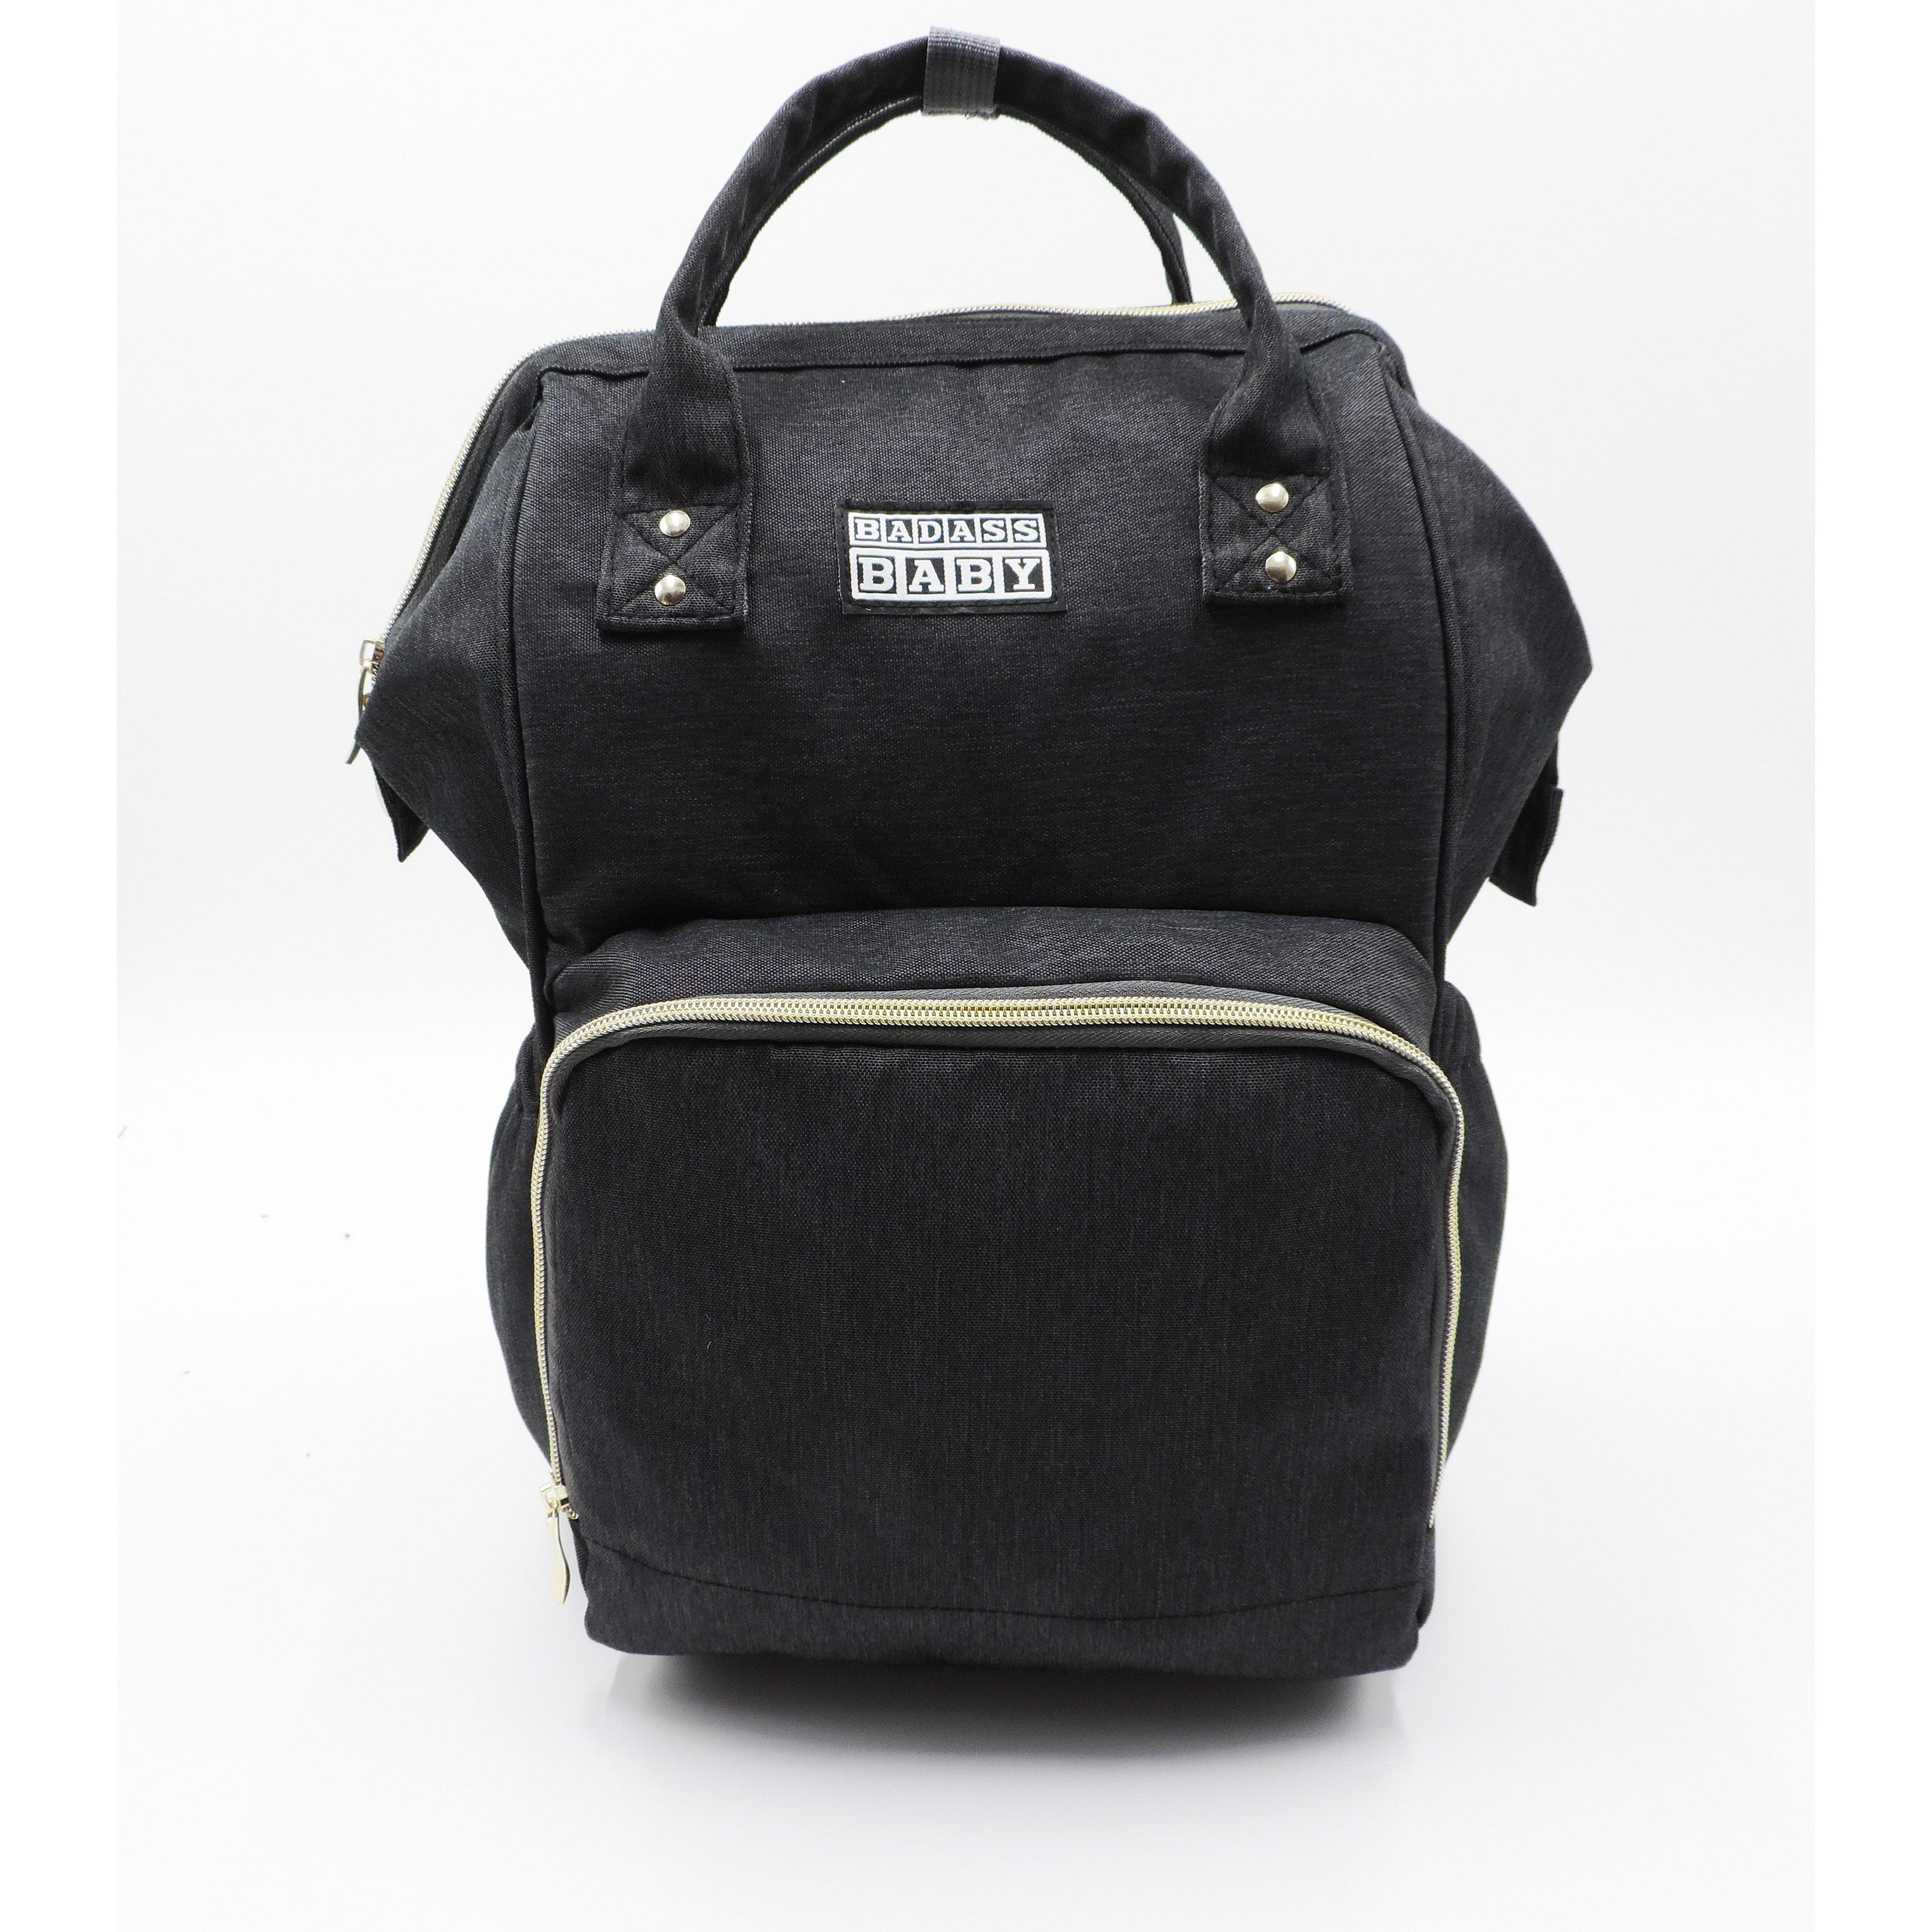 BADASS BABY® Fashion Nappy Bag - Best Selling!